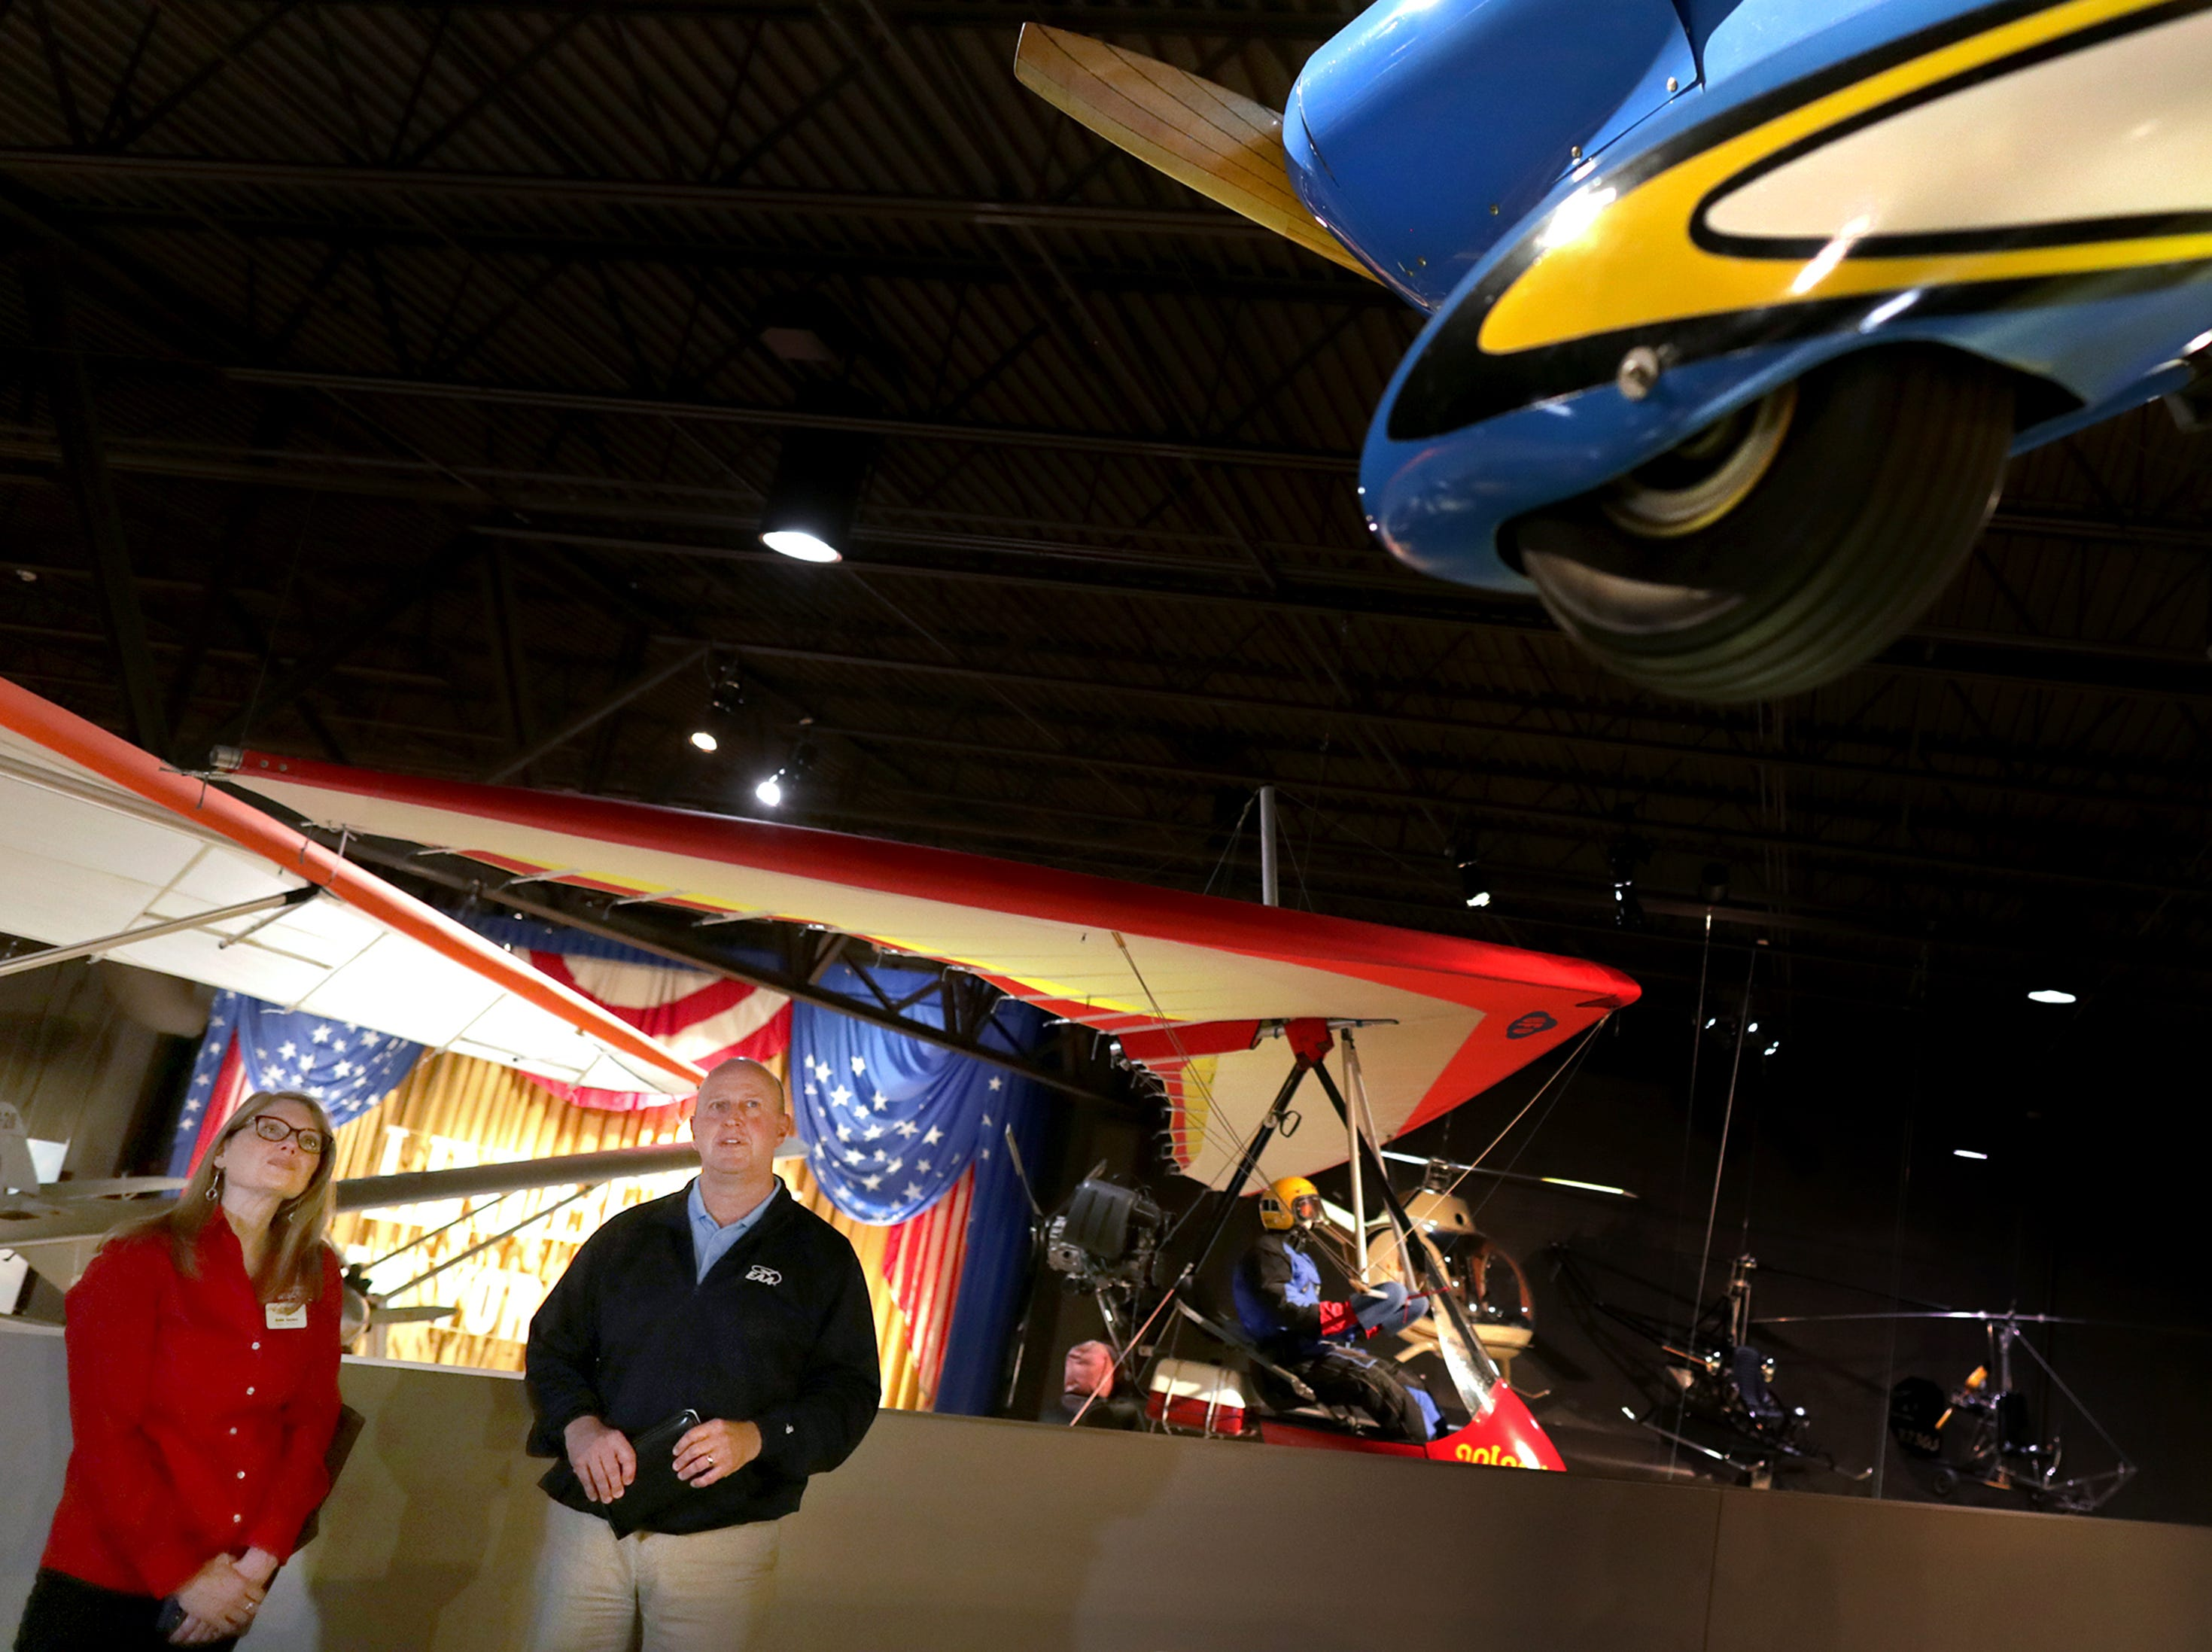 Dick Knapinski, EAA  Director of Communications, gives a museum tour to Wisconsin Deputy Secretary of Tourism Anne Sayersmduring a visit at the EAA Aviation Museum on Monday, May 6, 2019, in Oshkosh, Wis.